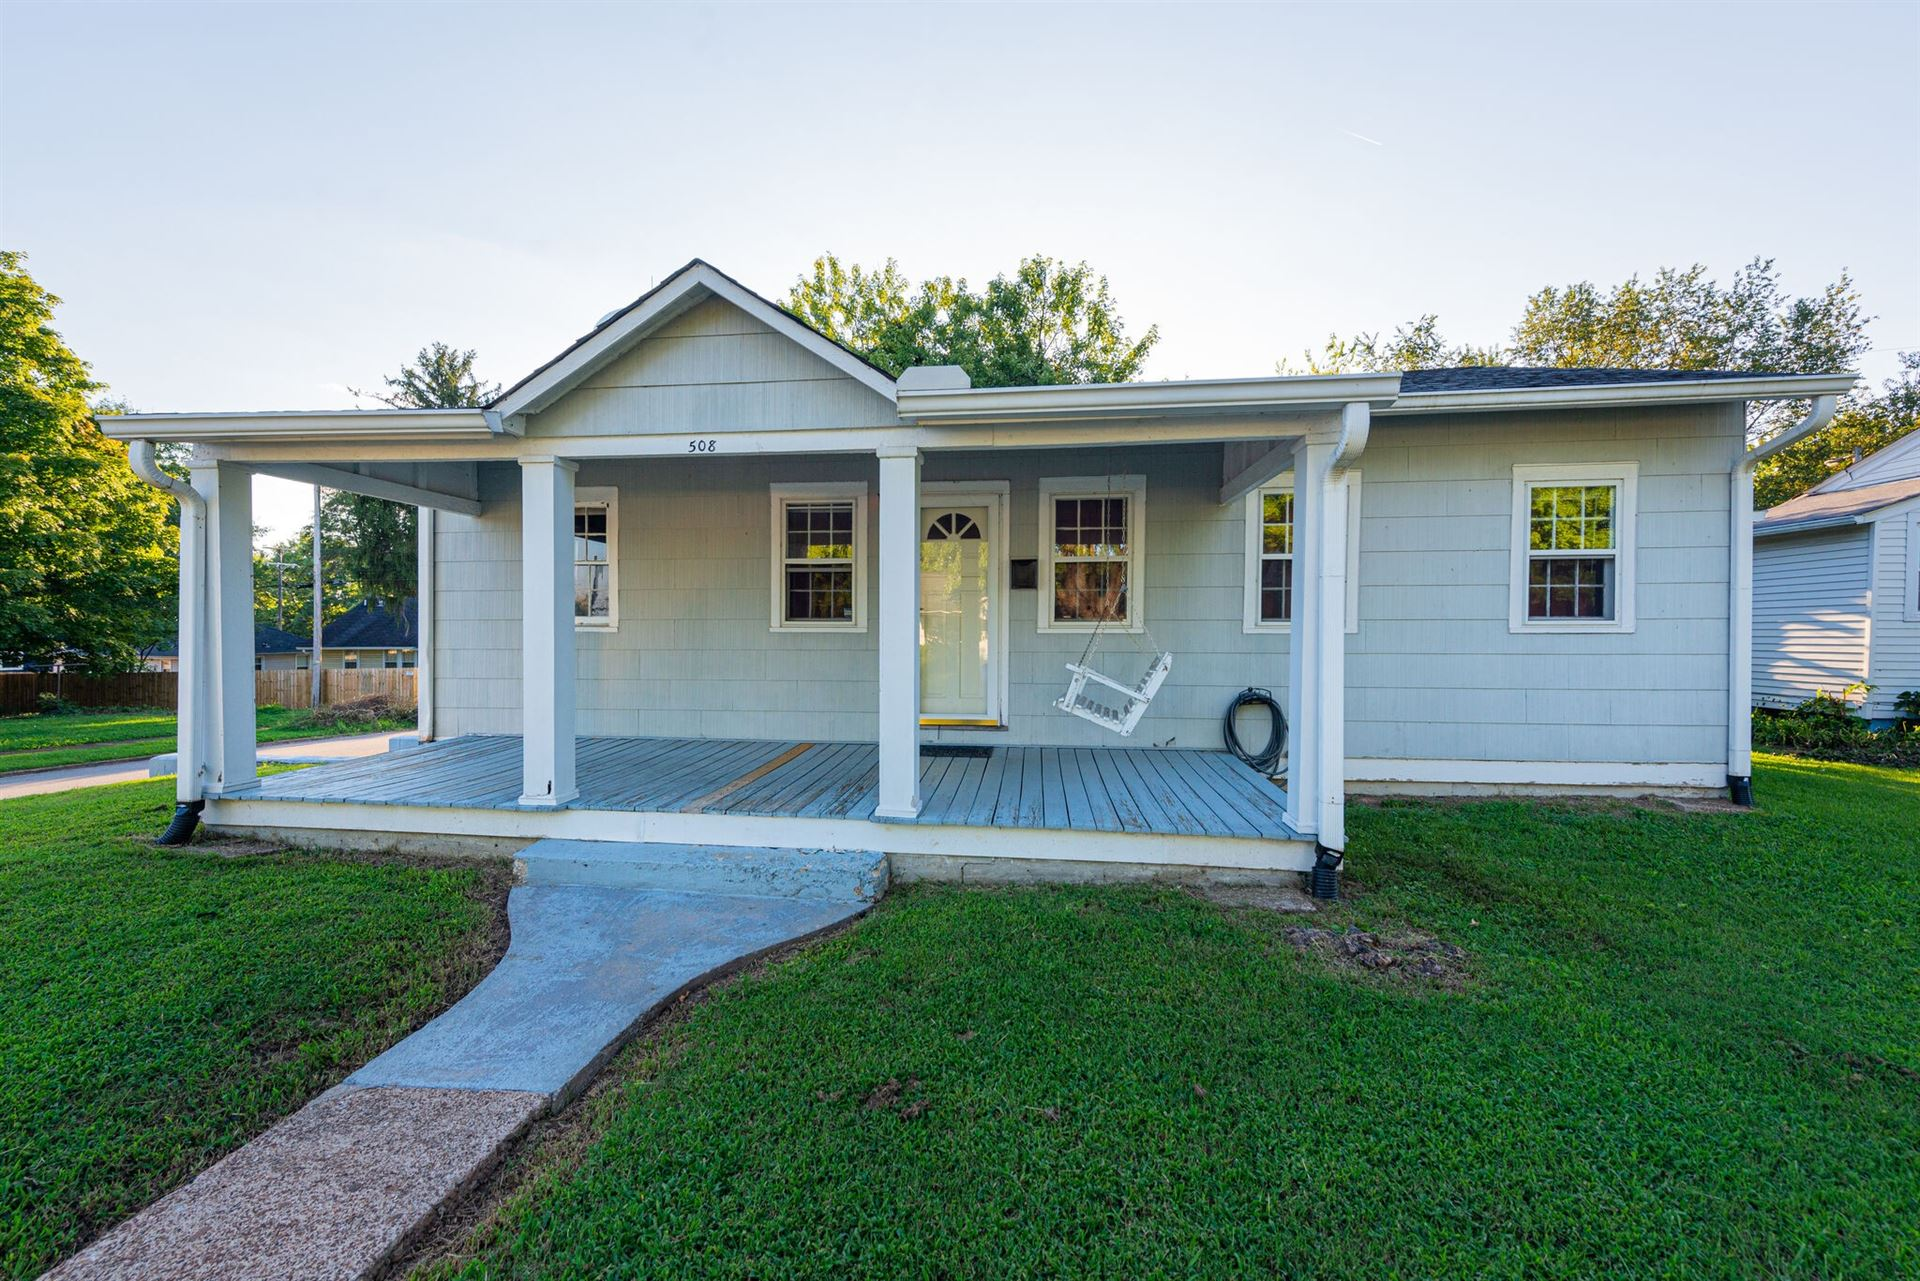 508 Lawrence St, Old Hickory, TN 37138 - MLS#: 2290759